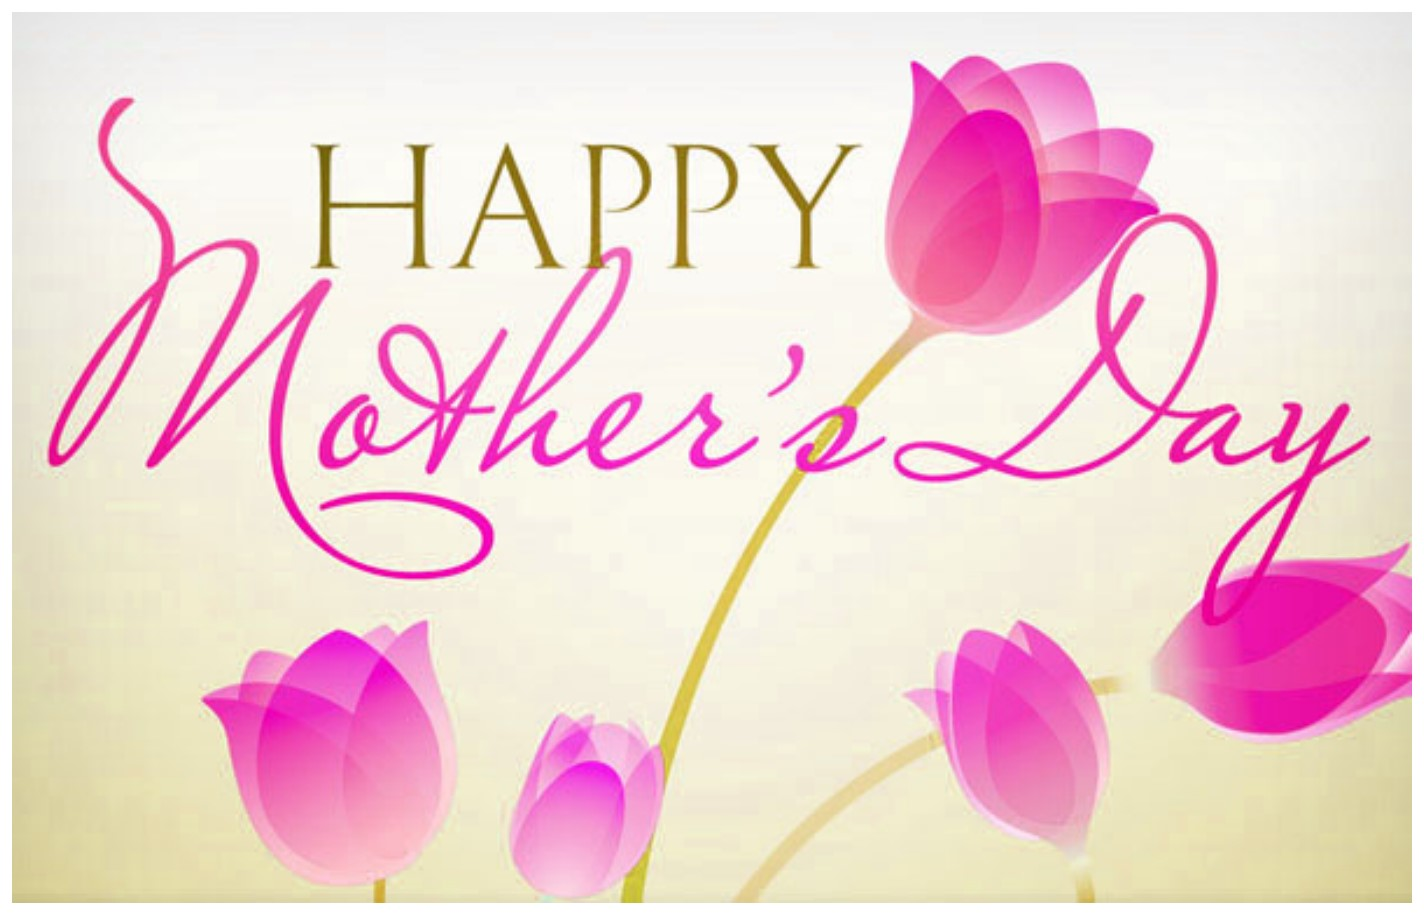 Happy Mothers Day 2020 HD Wallpaper Download Free